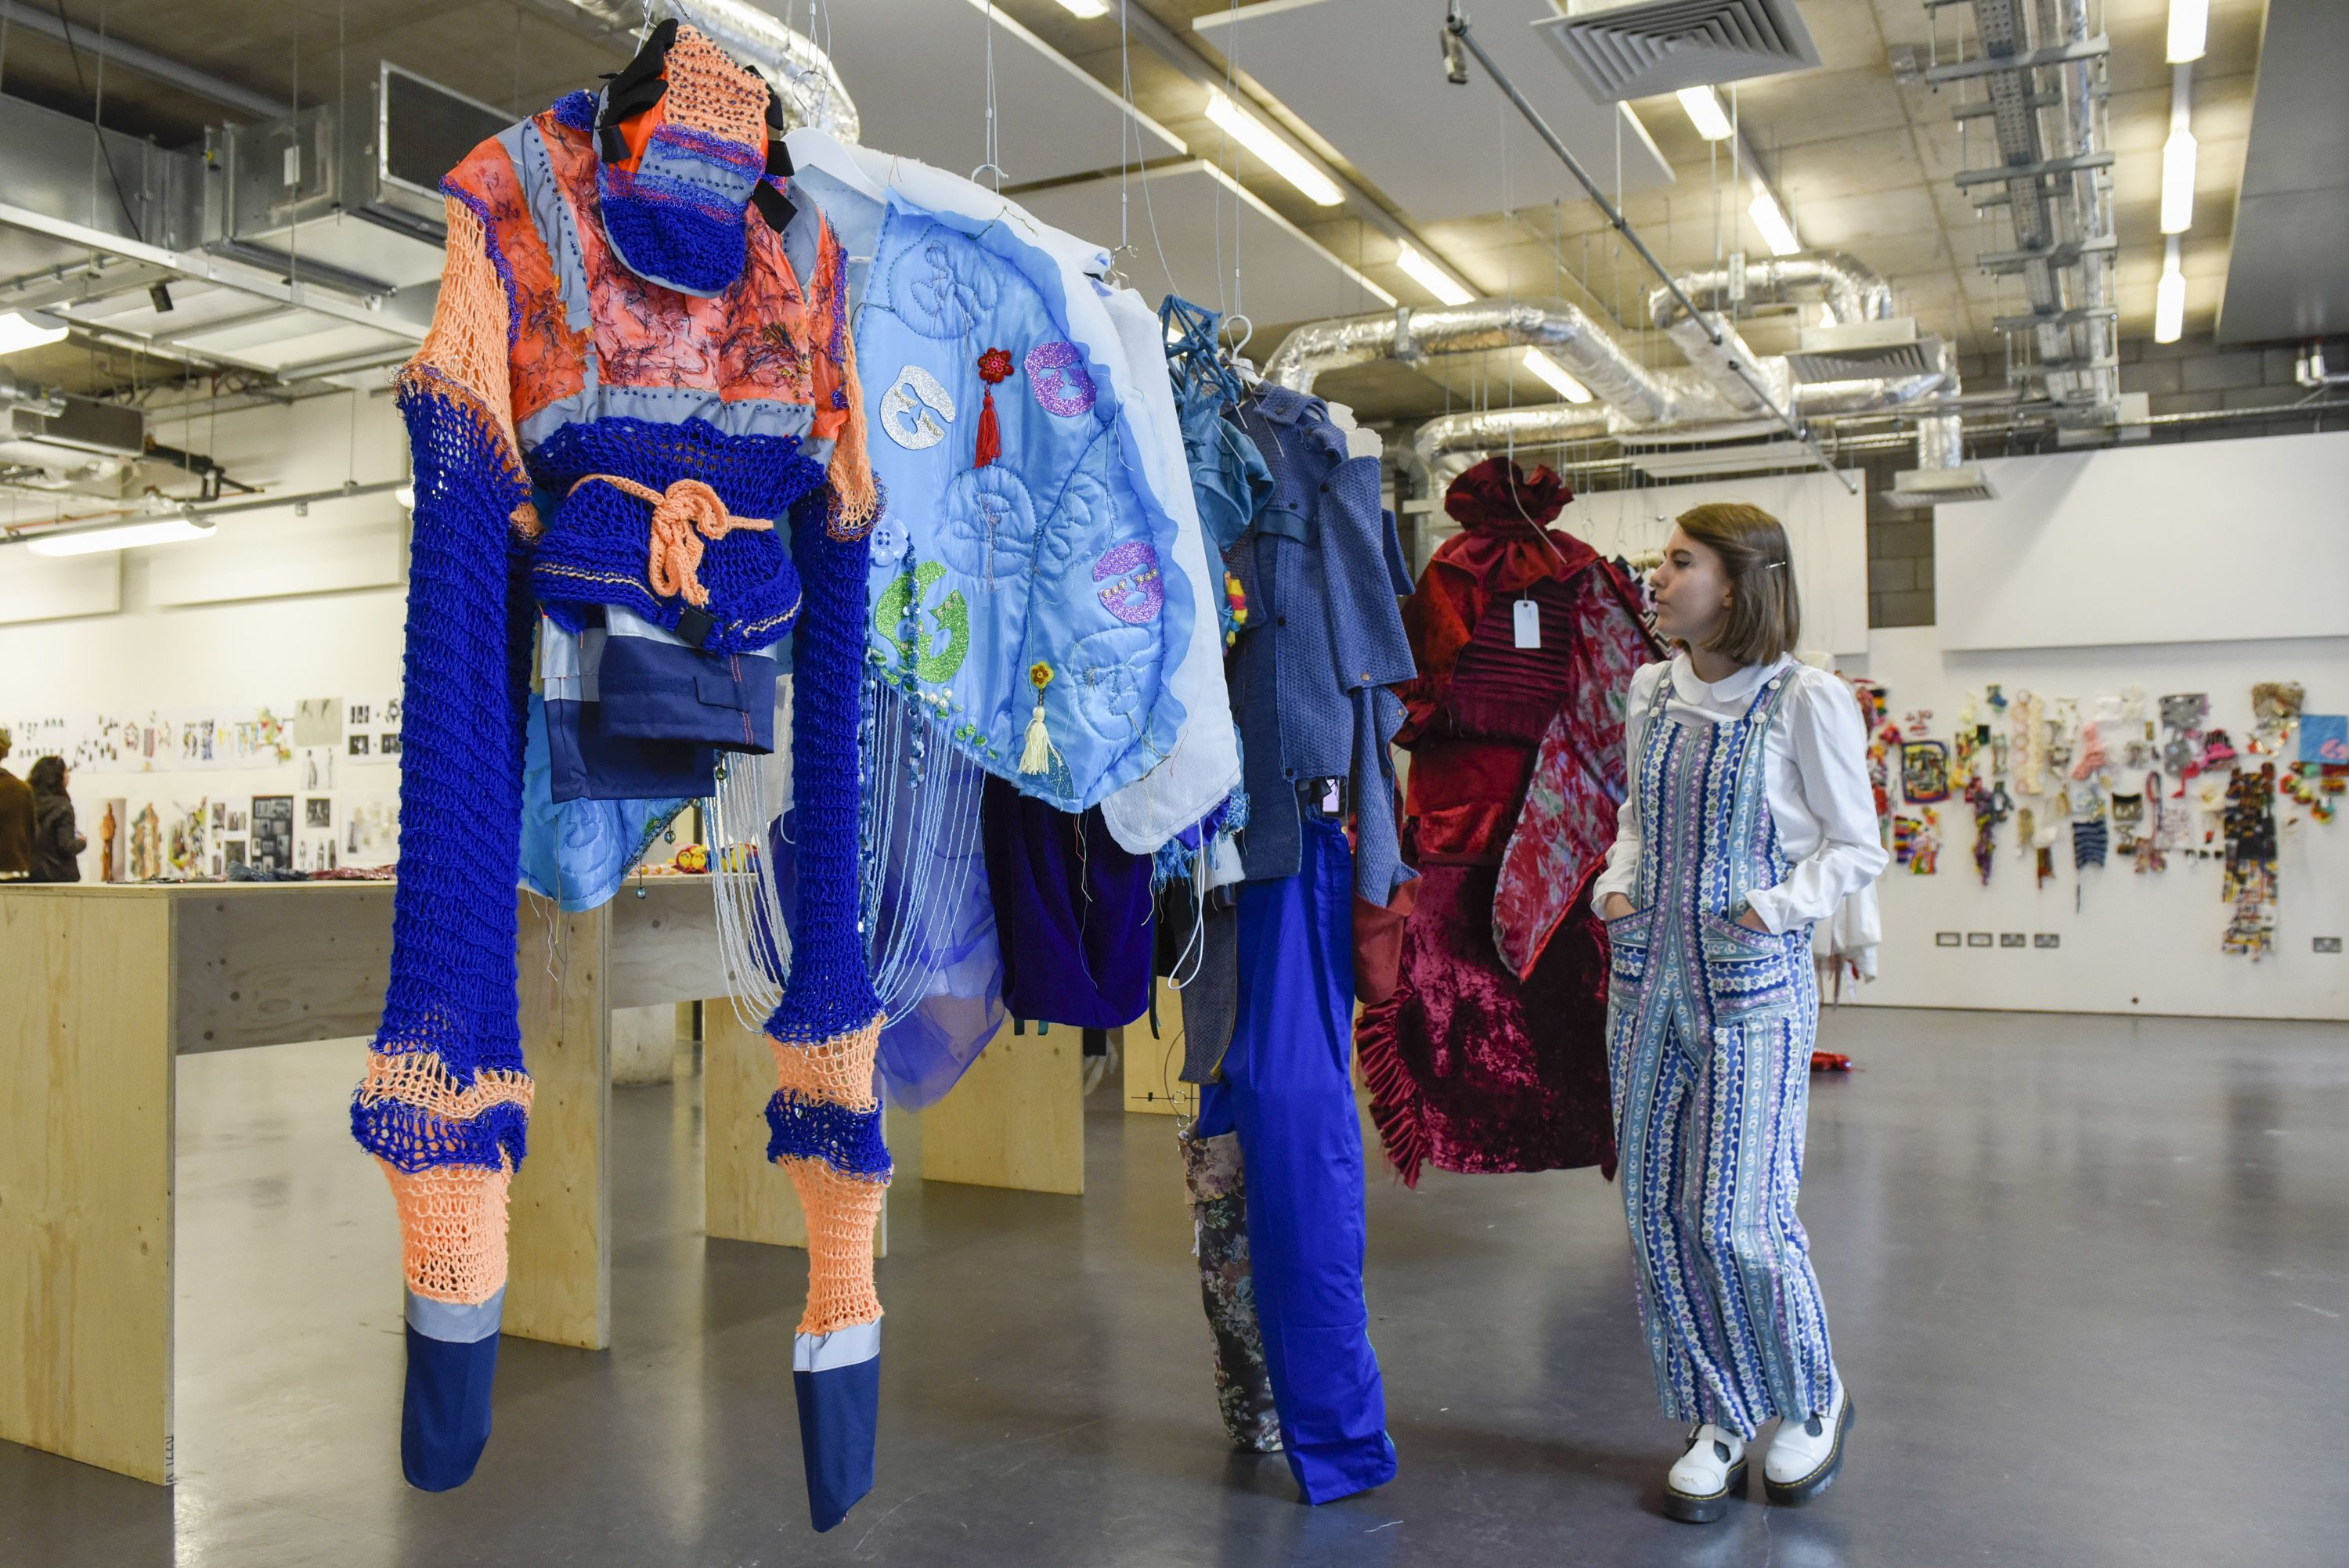 Colourful garments on display by Central Saint Martins foundation students.